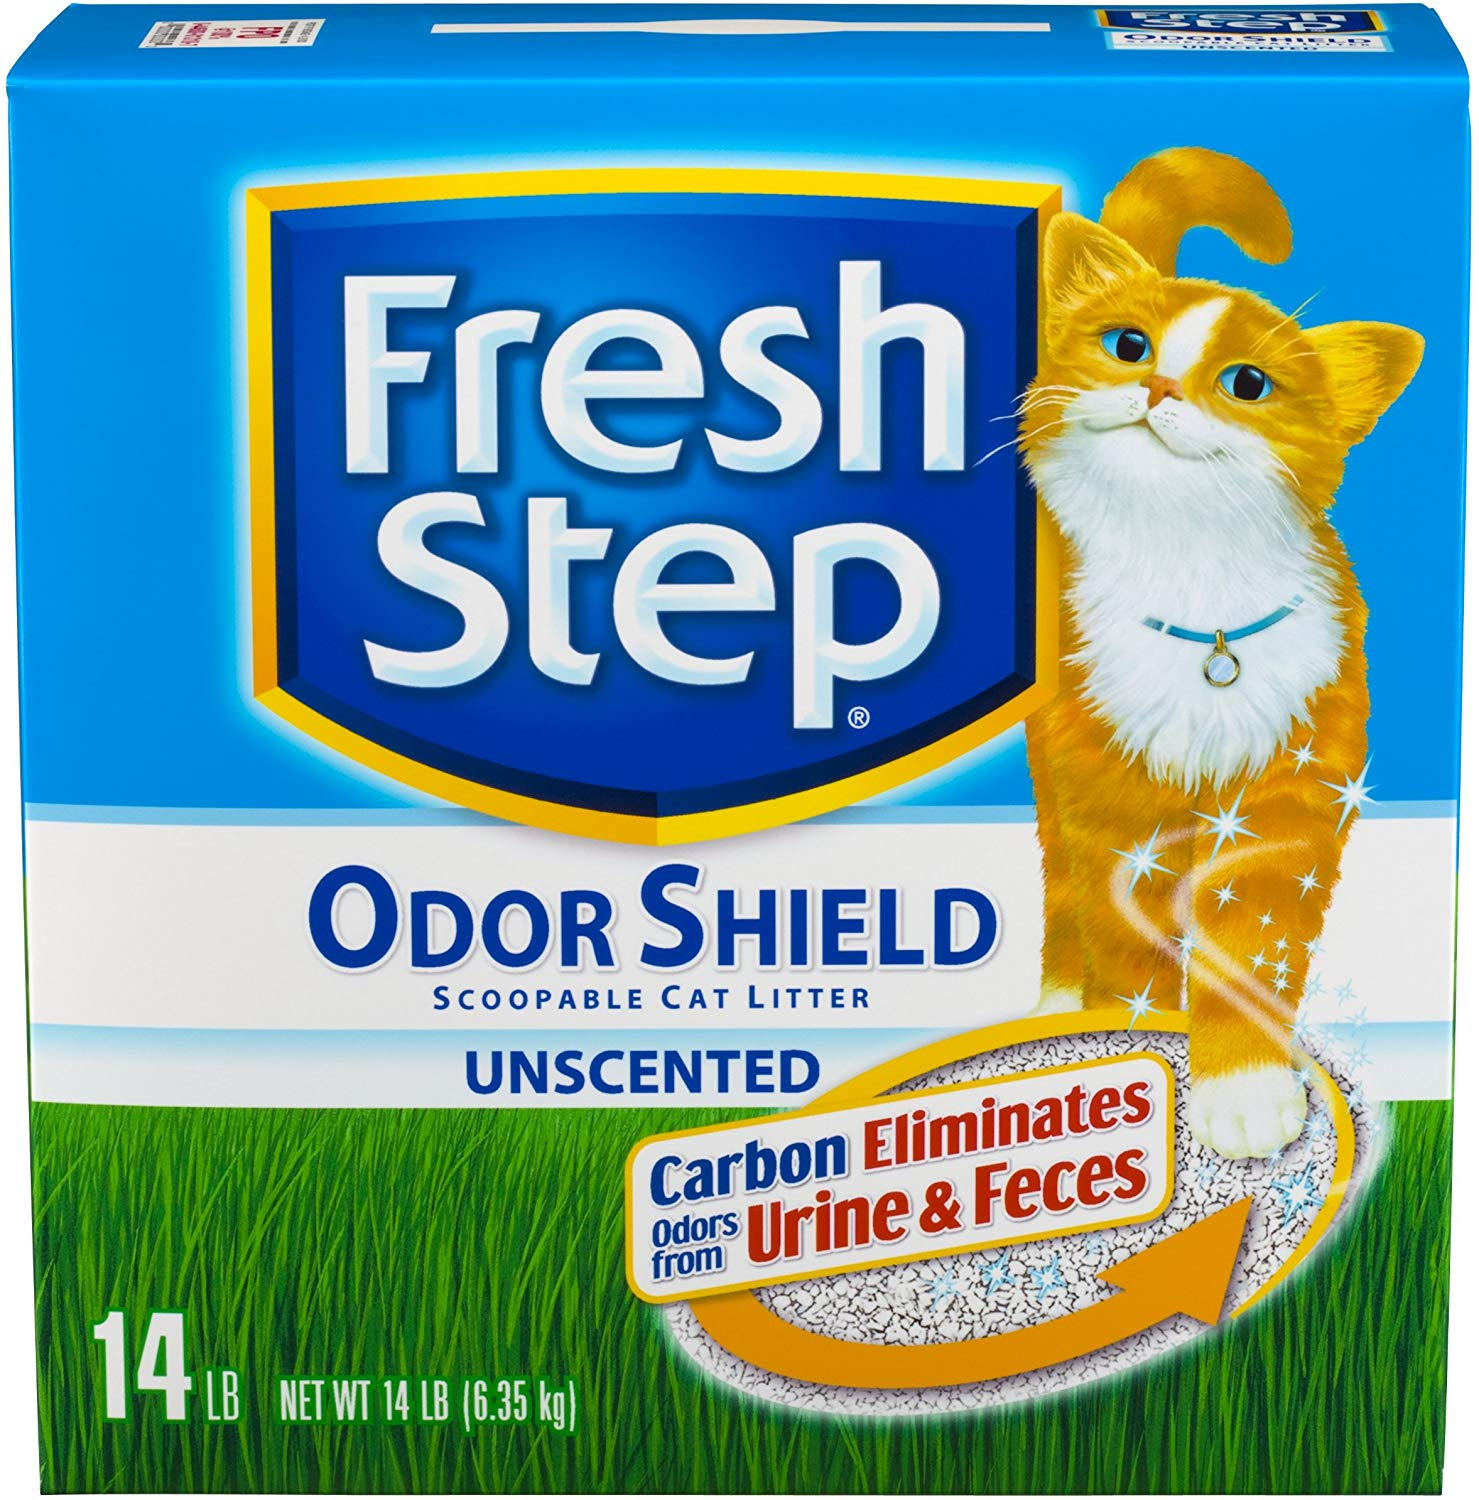 Fresh Step Odor Shield Unscented Scoopable Cat Litter, 14-lb (Size: 14-lb) Image